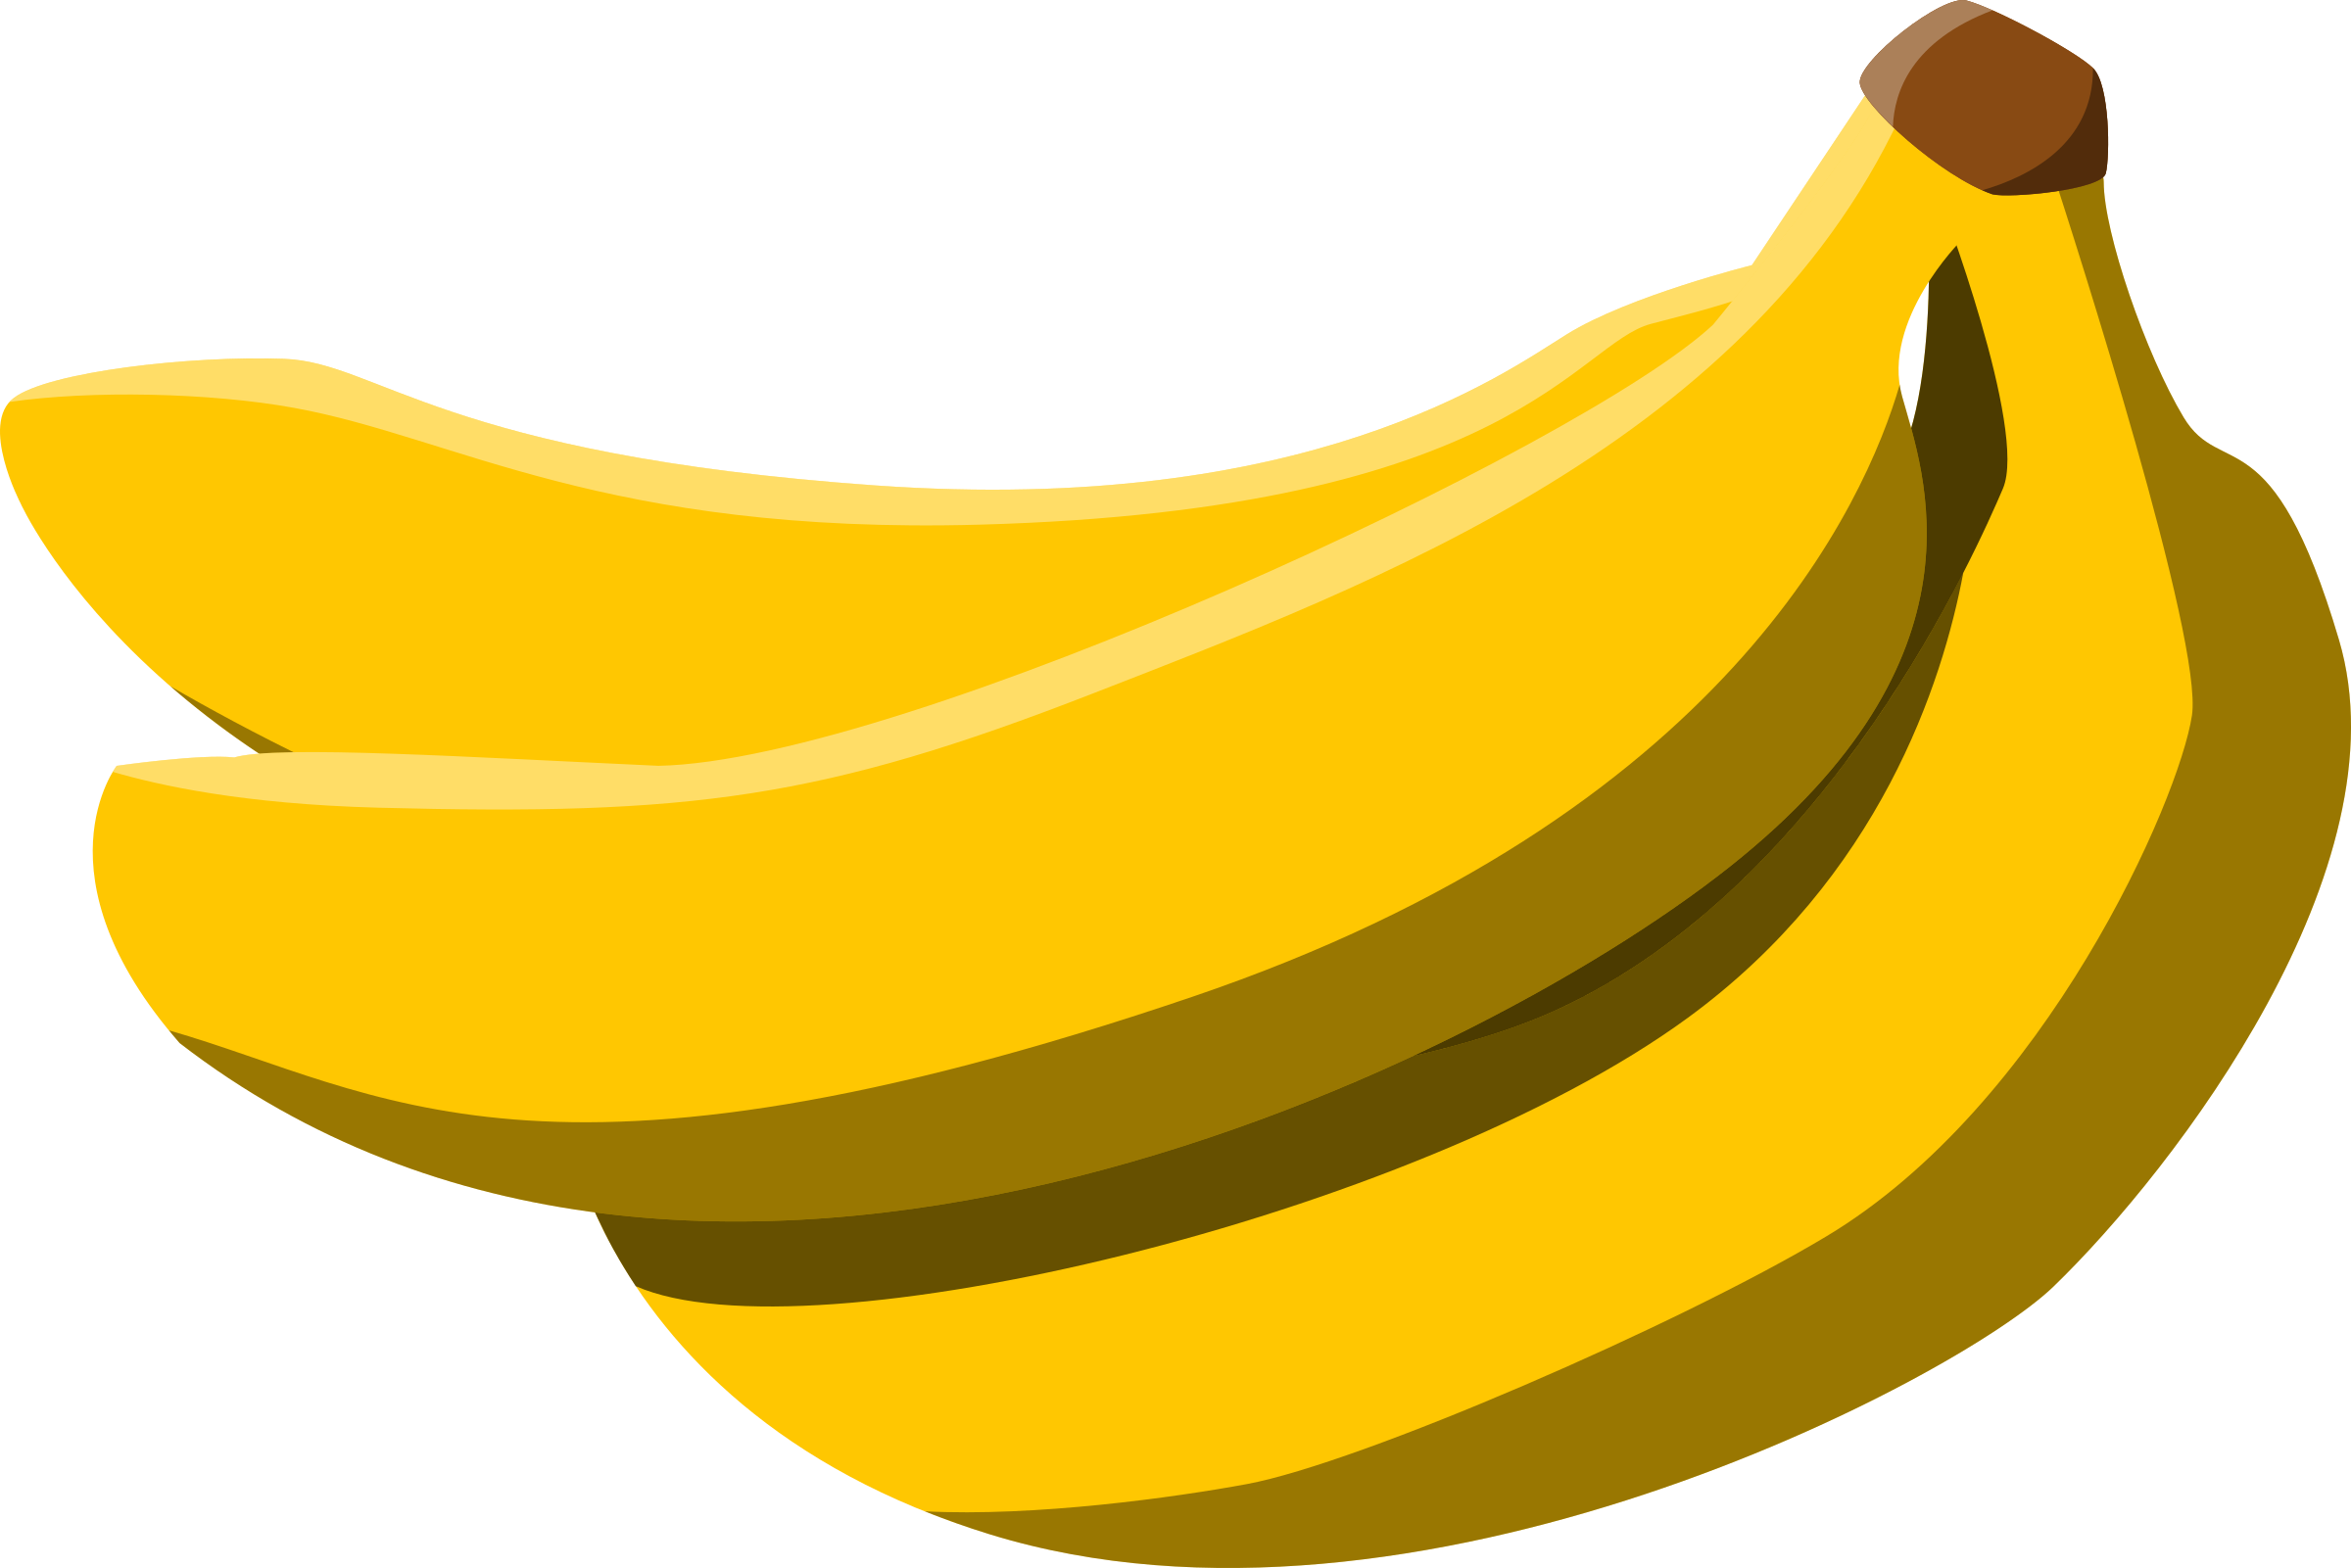 Bananas by pitr